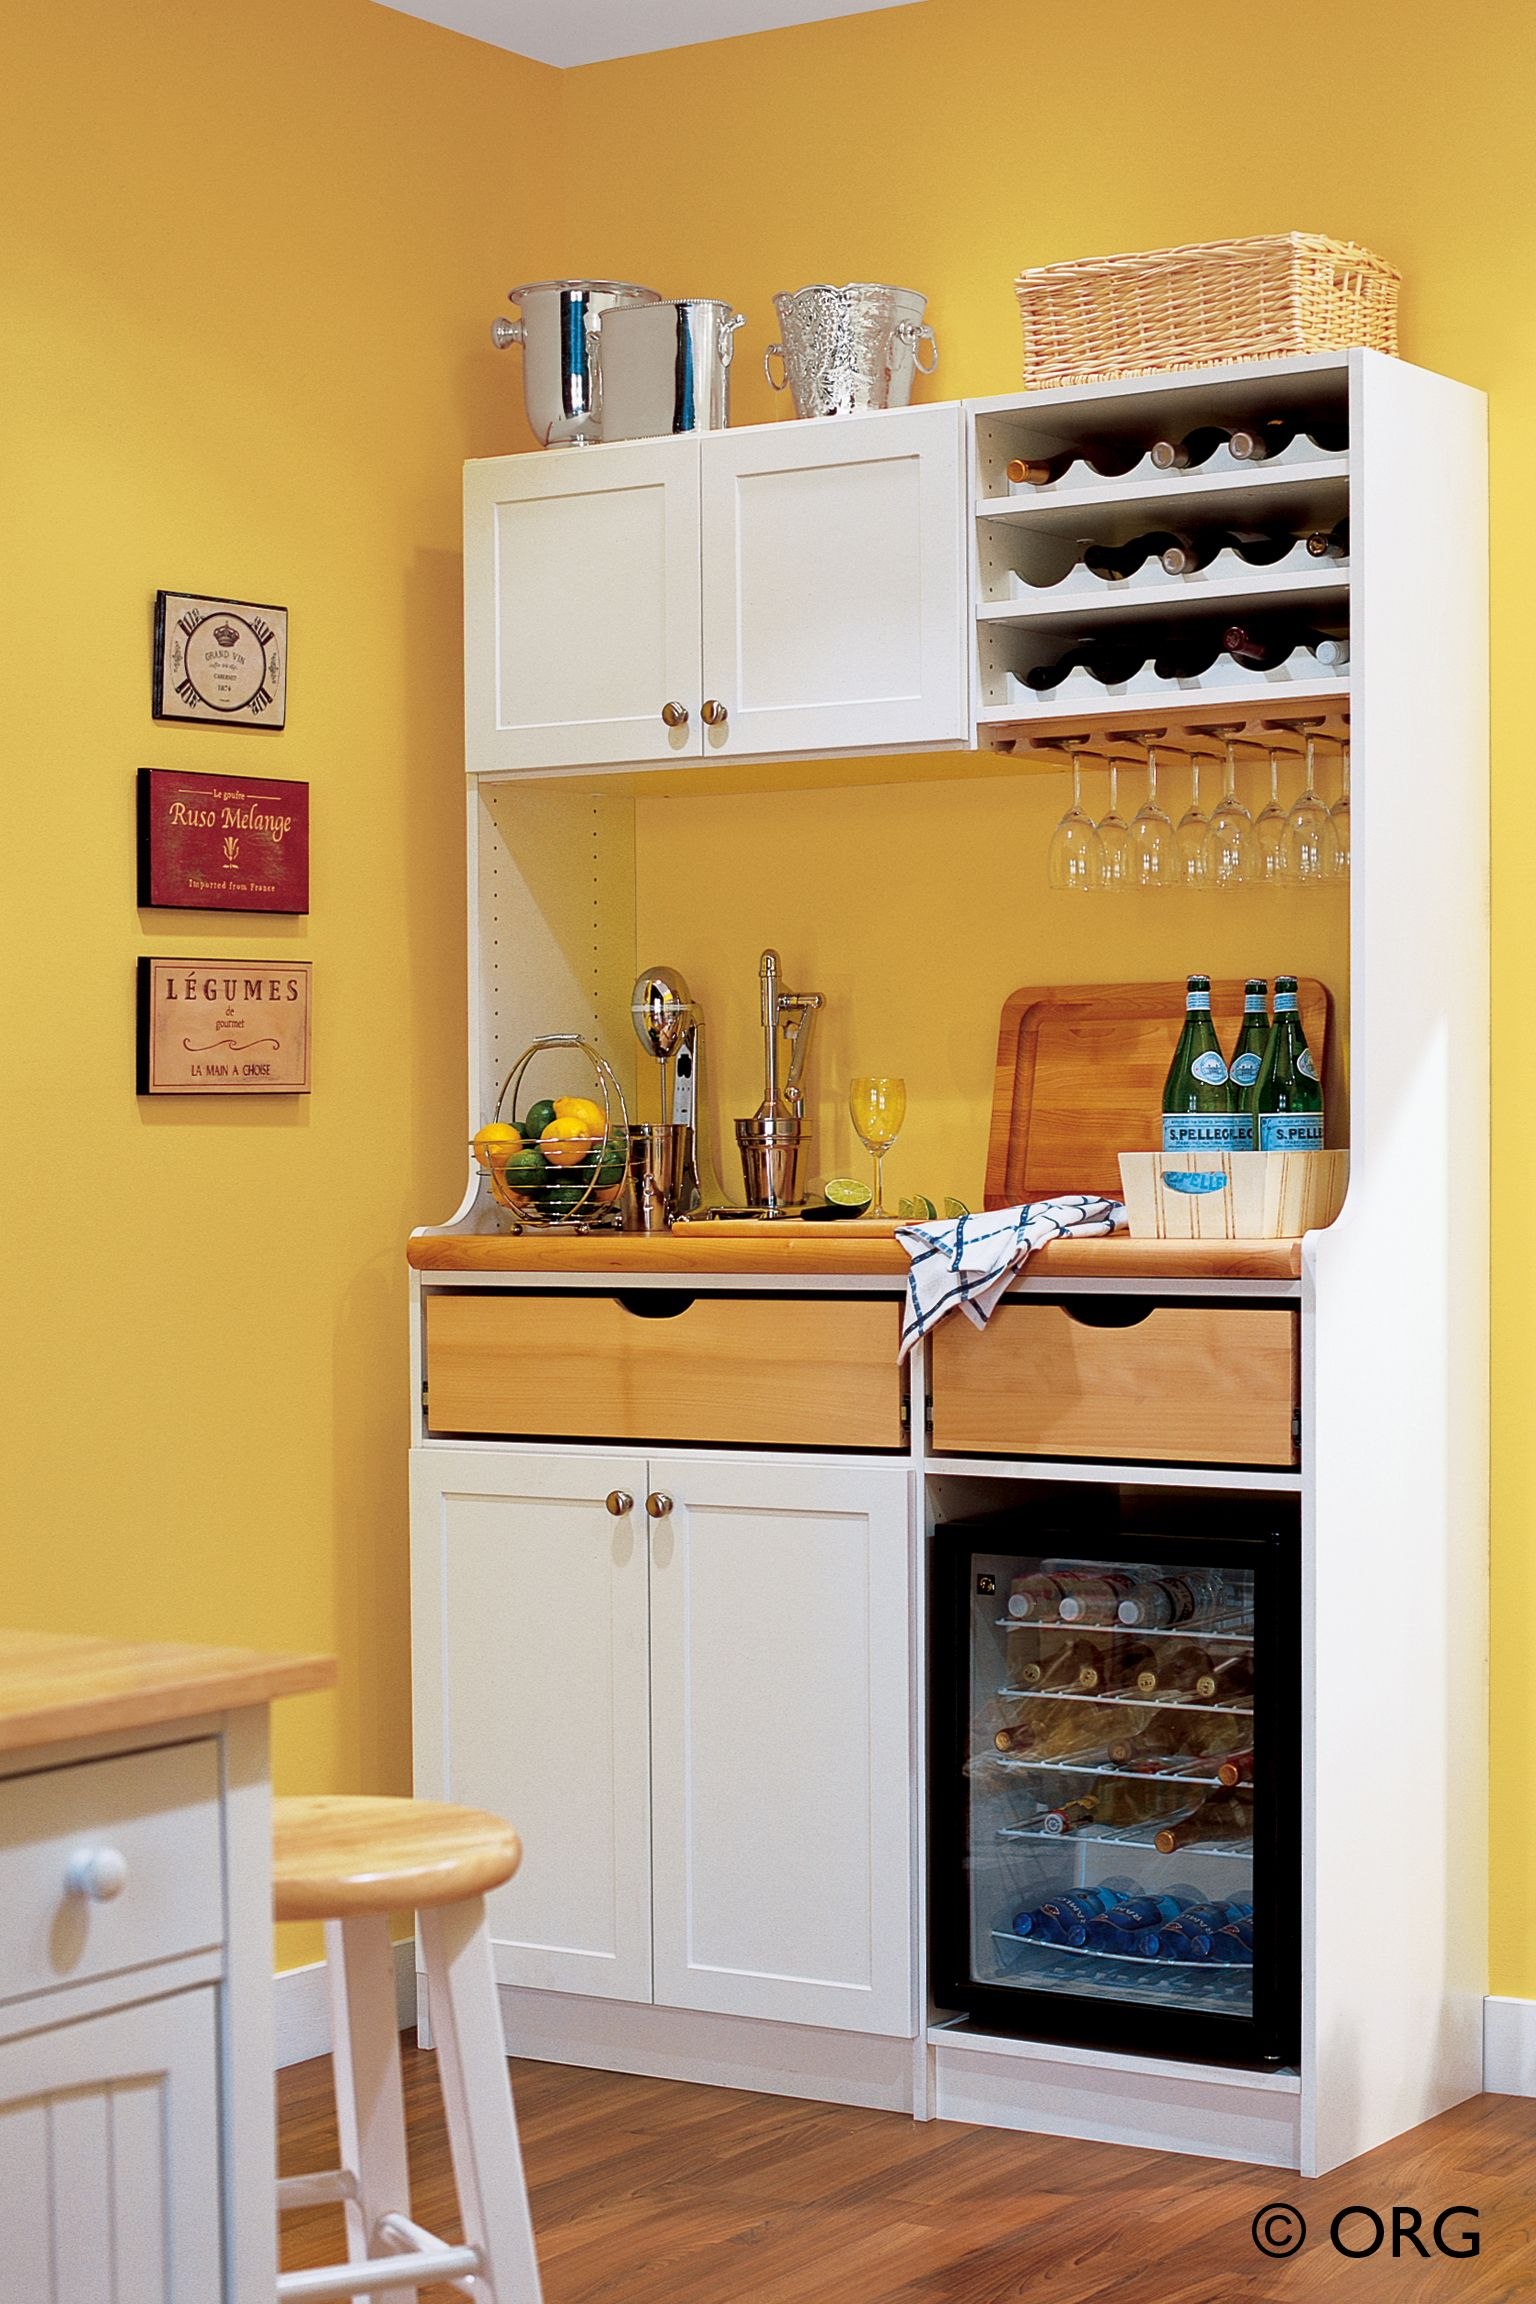 Storage solutions for tiny kitchens kitchen storage solutions pantry storage cabinets - Kitchen storage solutions for small spaces concept ...